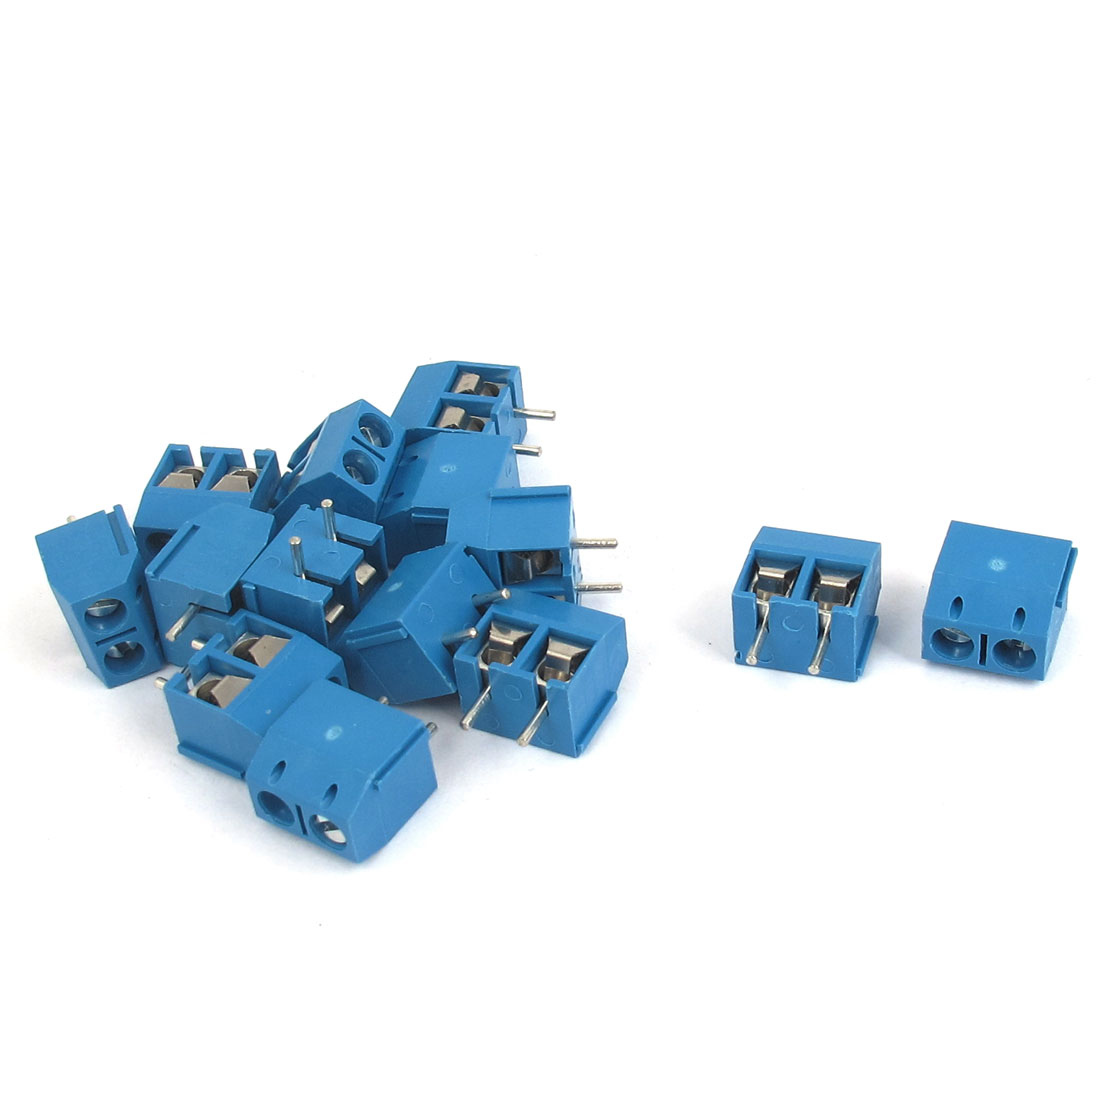 2P 5mm Pitch PCB Mounting Screw Terminal Block Connector AC 300V 10A 14pcs